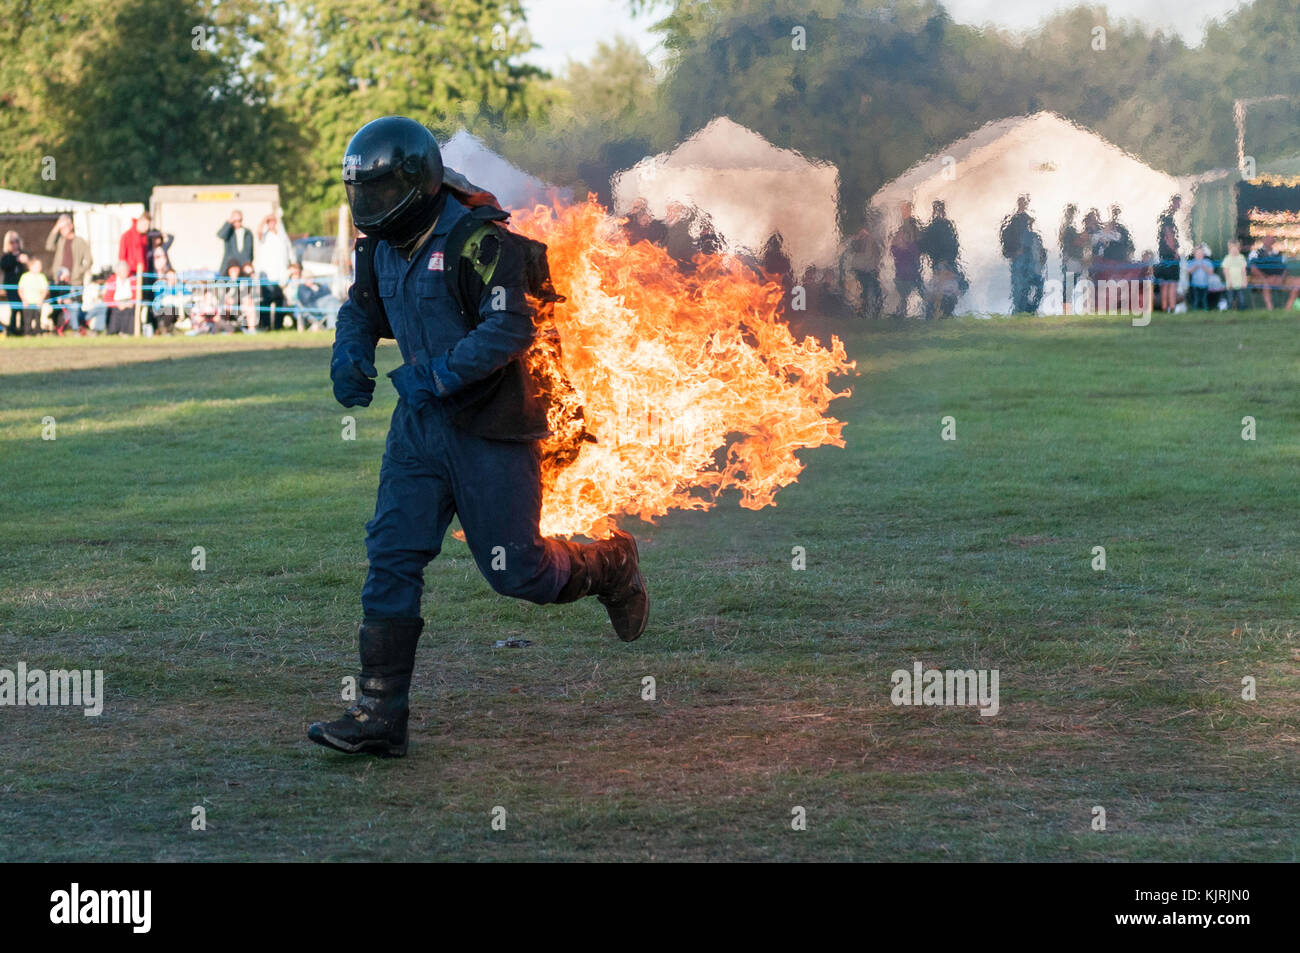 Astle Park, Cheshire, UK - August 12 2017: A stuntman on fire at Astle Park Traction Engine Rally Stock Photo